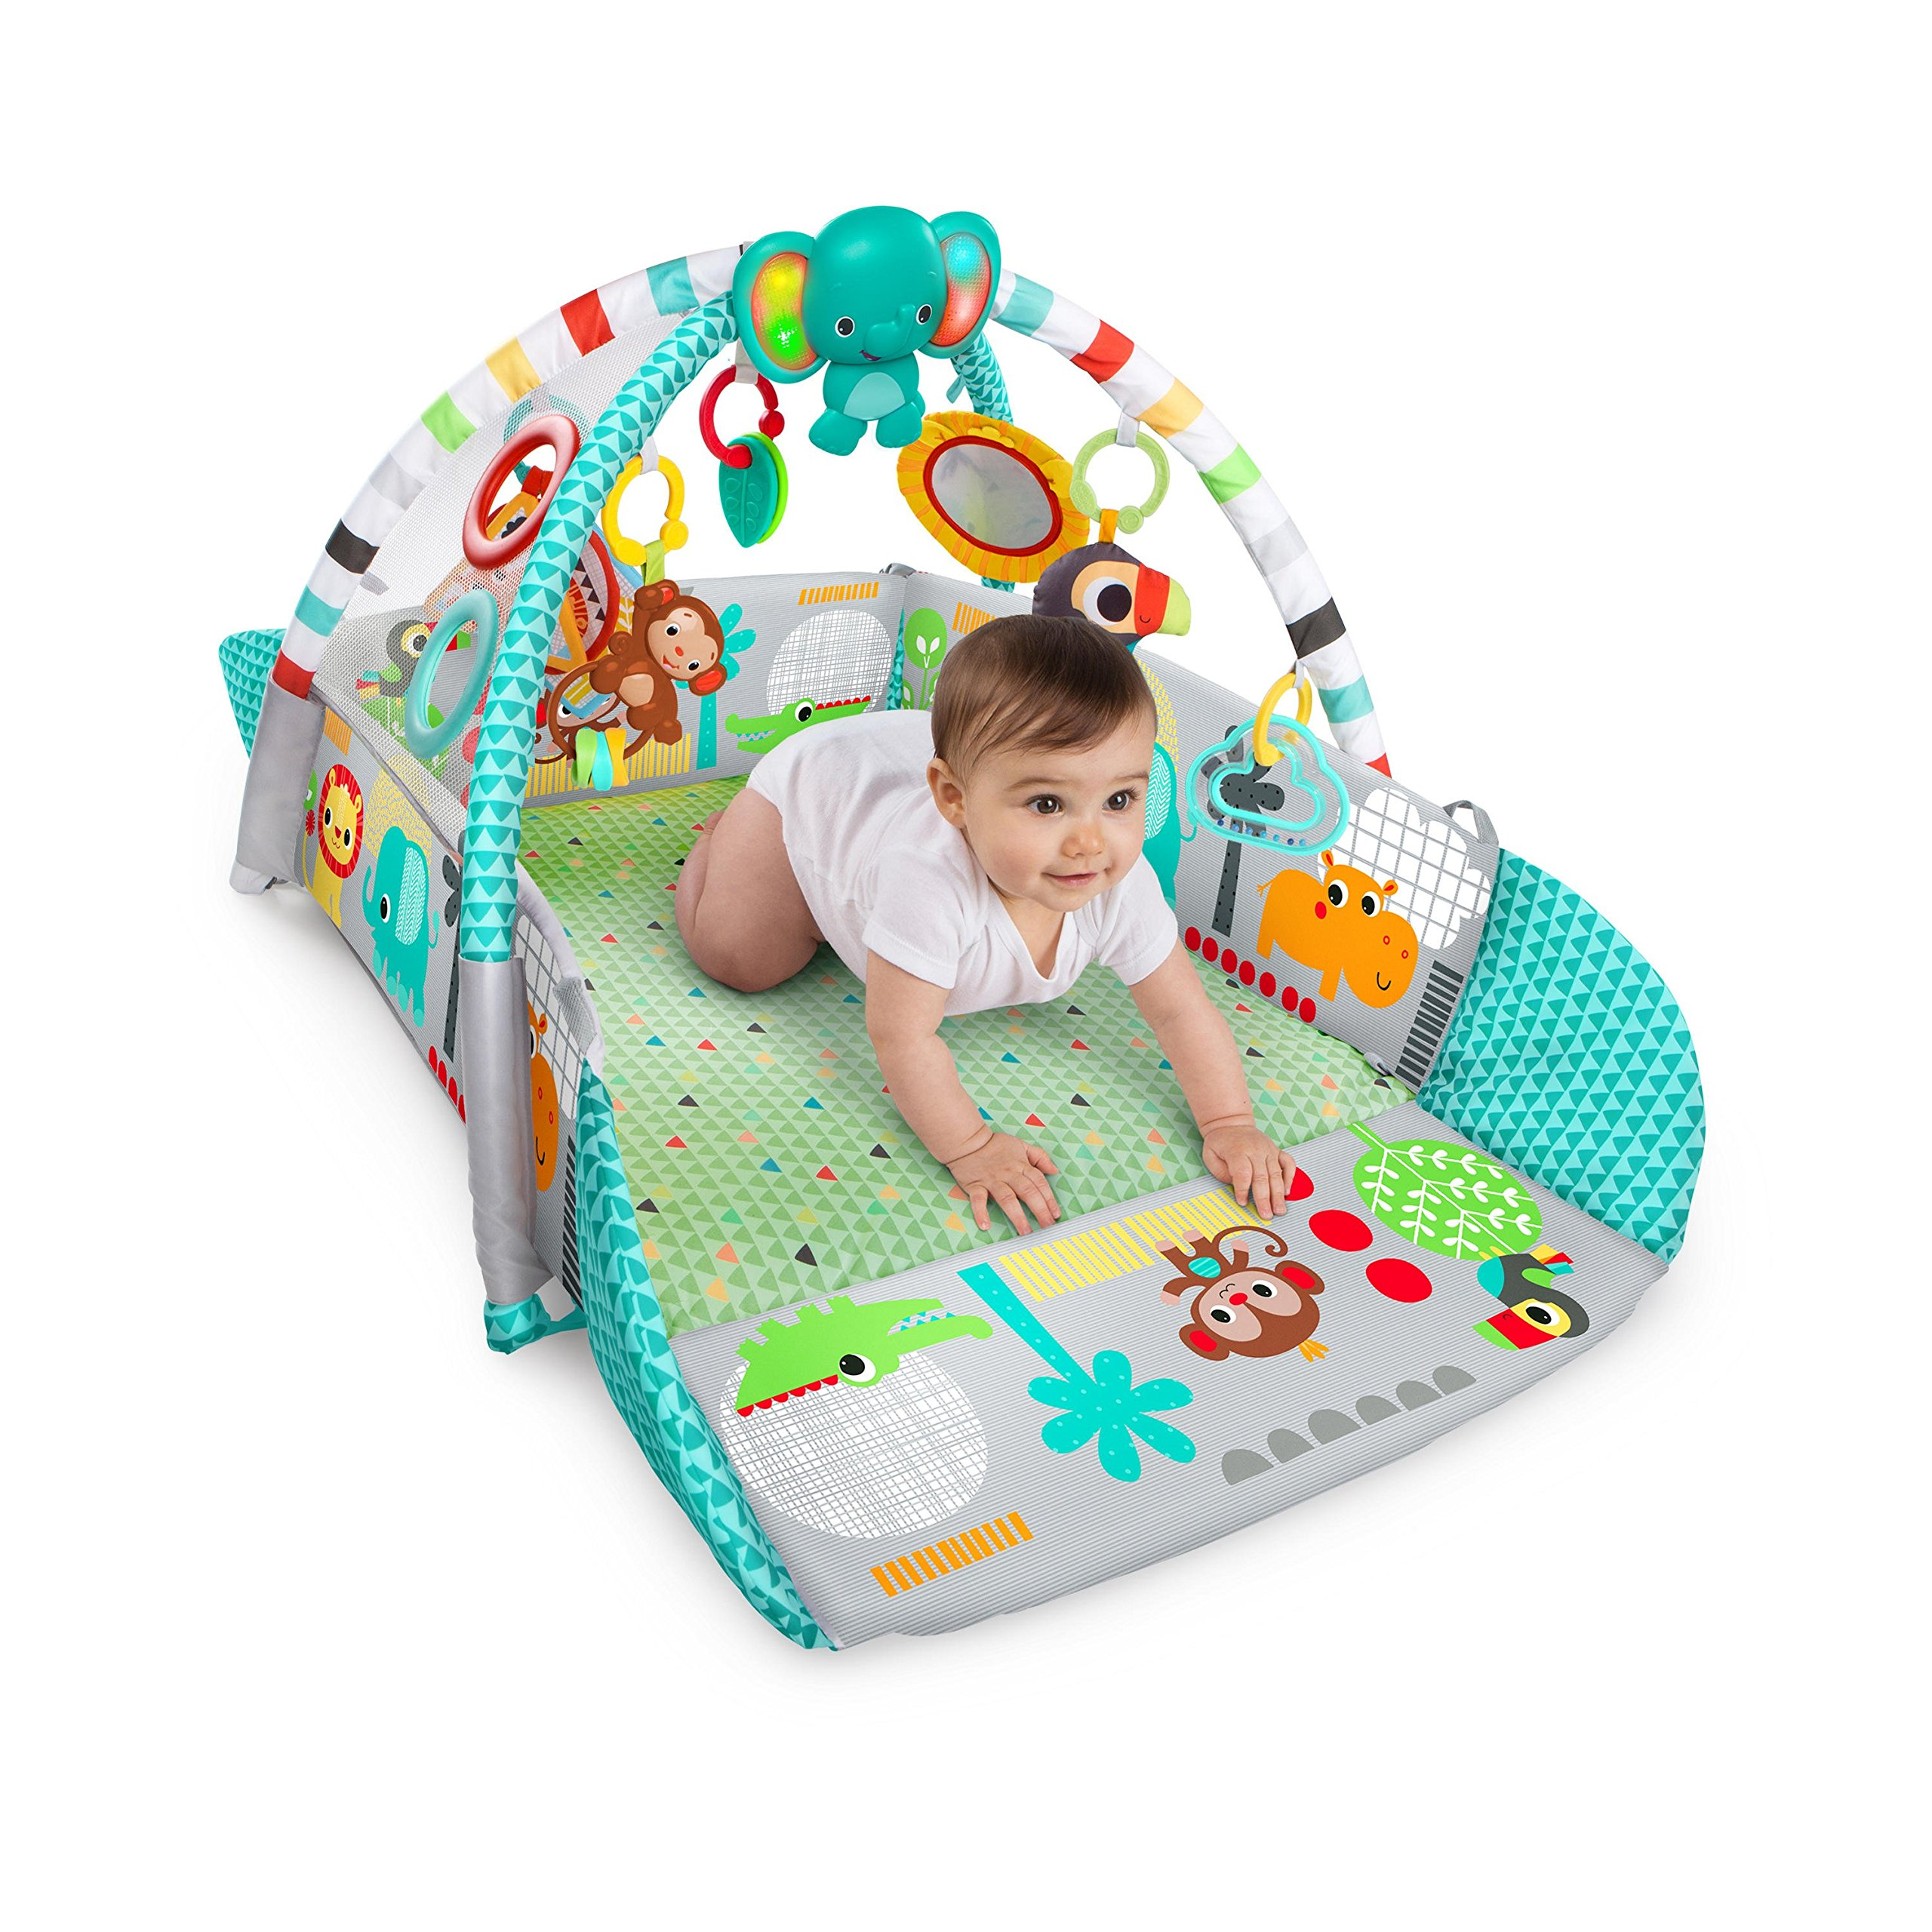 Bright Starts 5-in-1 Play Activity Gym, Your Way Ball by Bright Starts (Image #13)